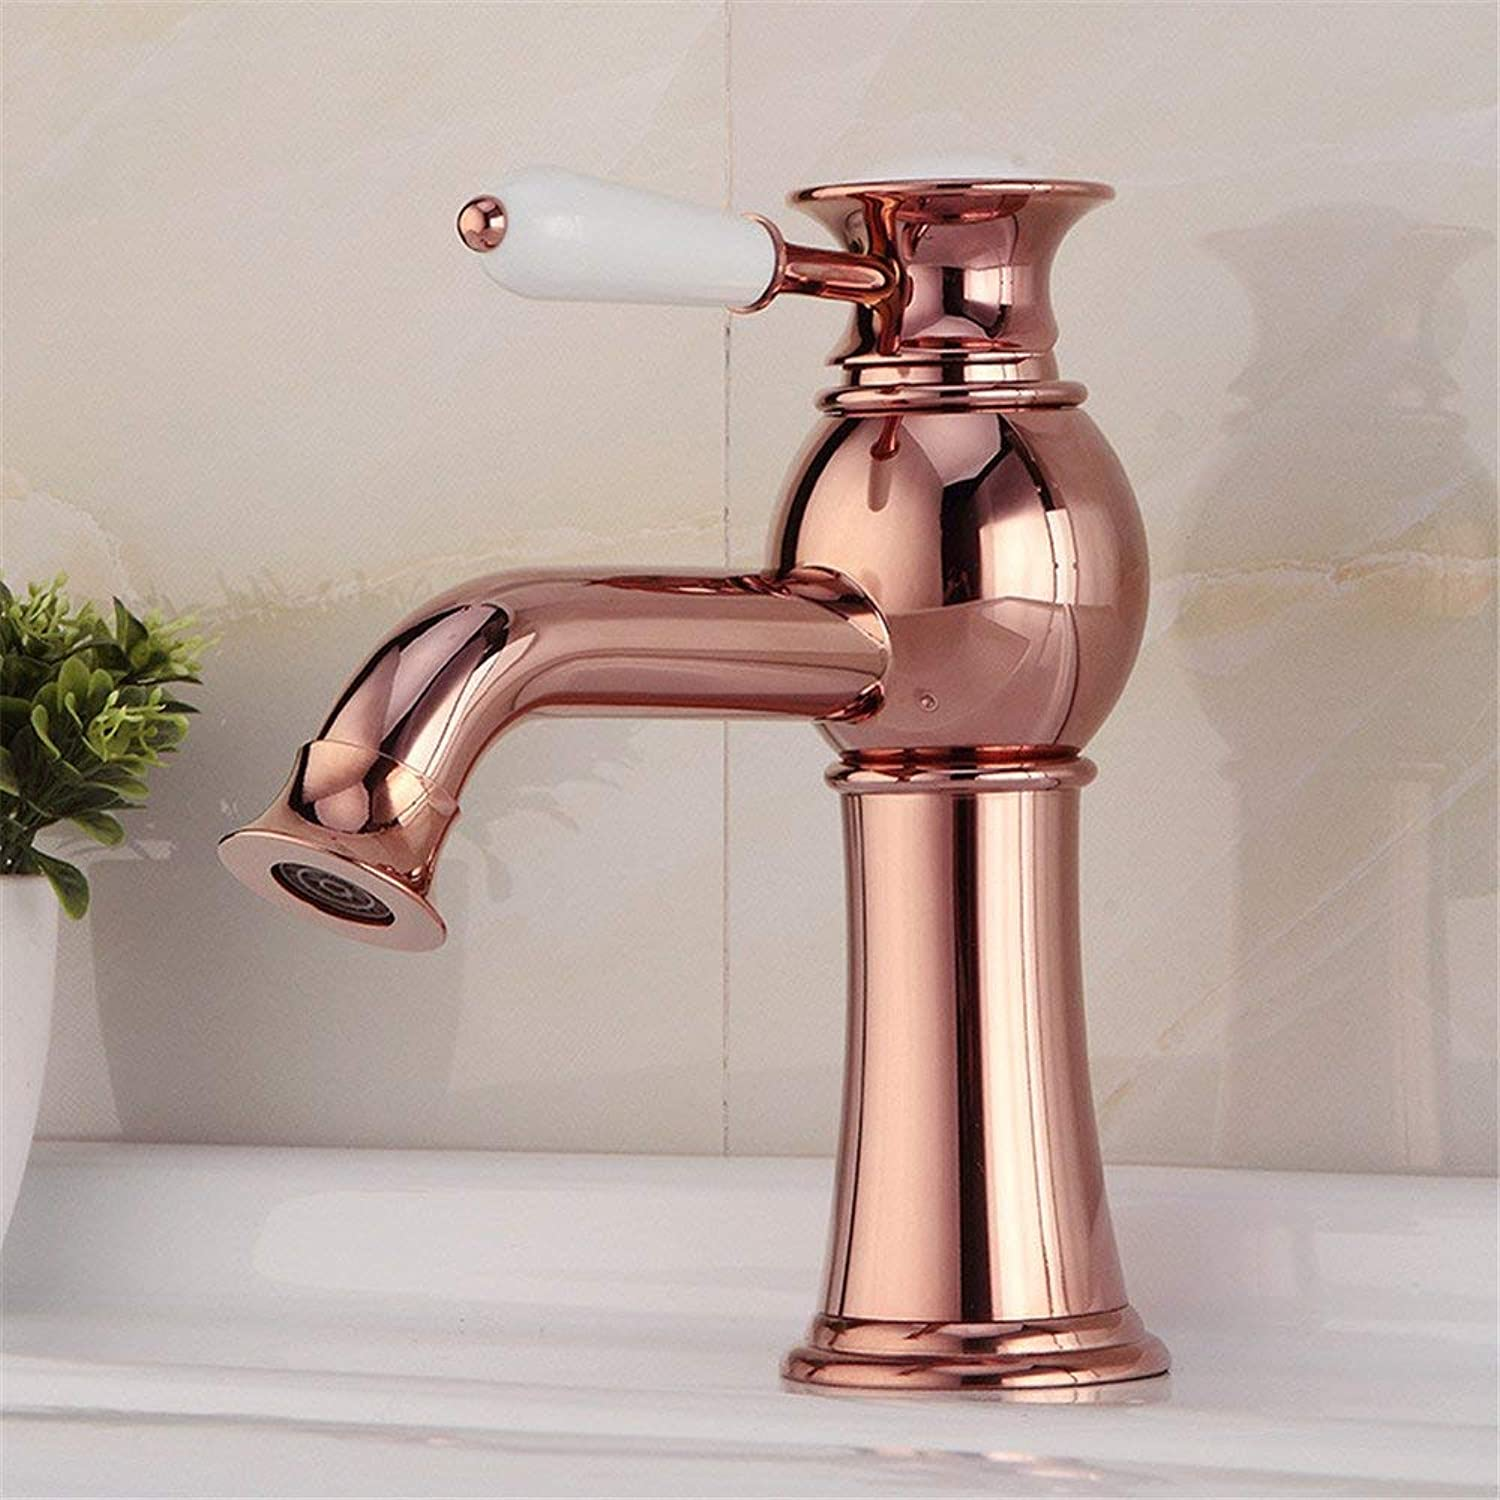 Oudan European Antique gold-Plated Faucet Hot and Cold Taps European Sanitary Ware Cabinet Basin Faucet Bathroom Basin Mixer (color   -, Size   -)